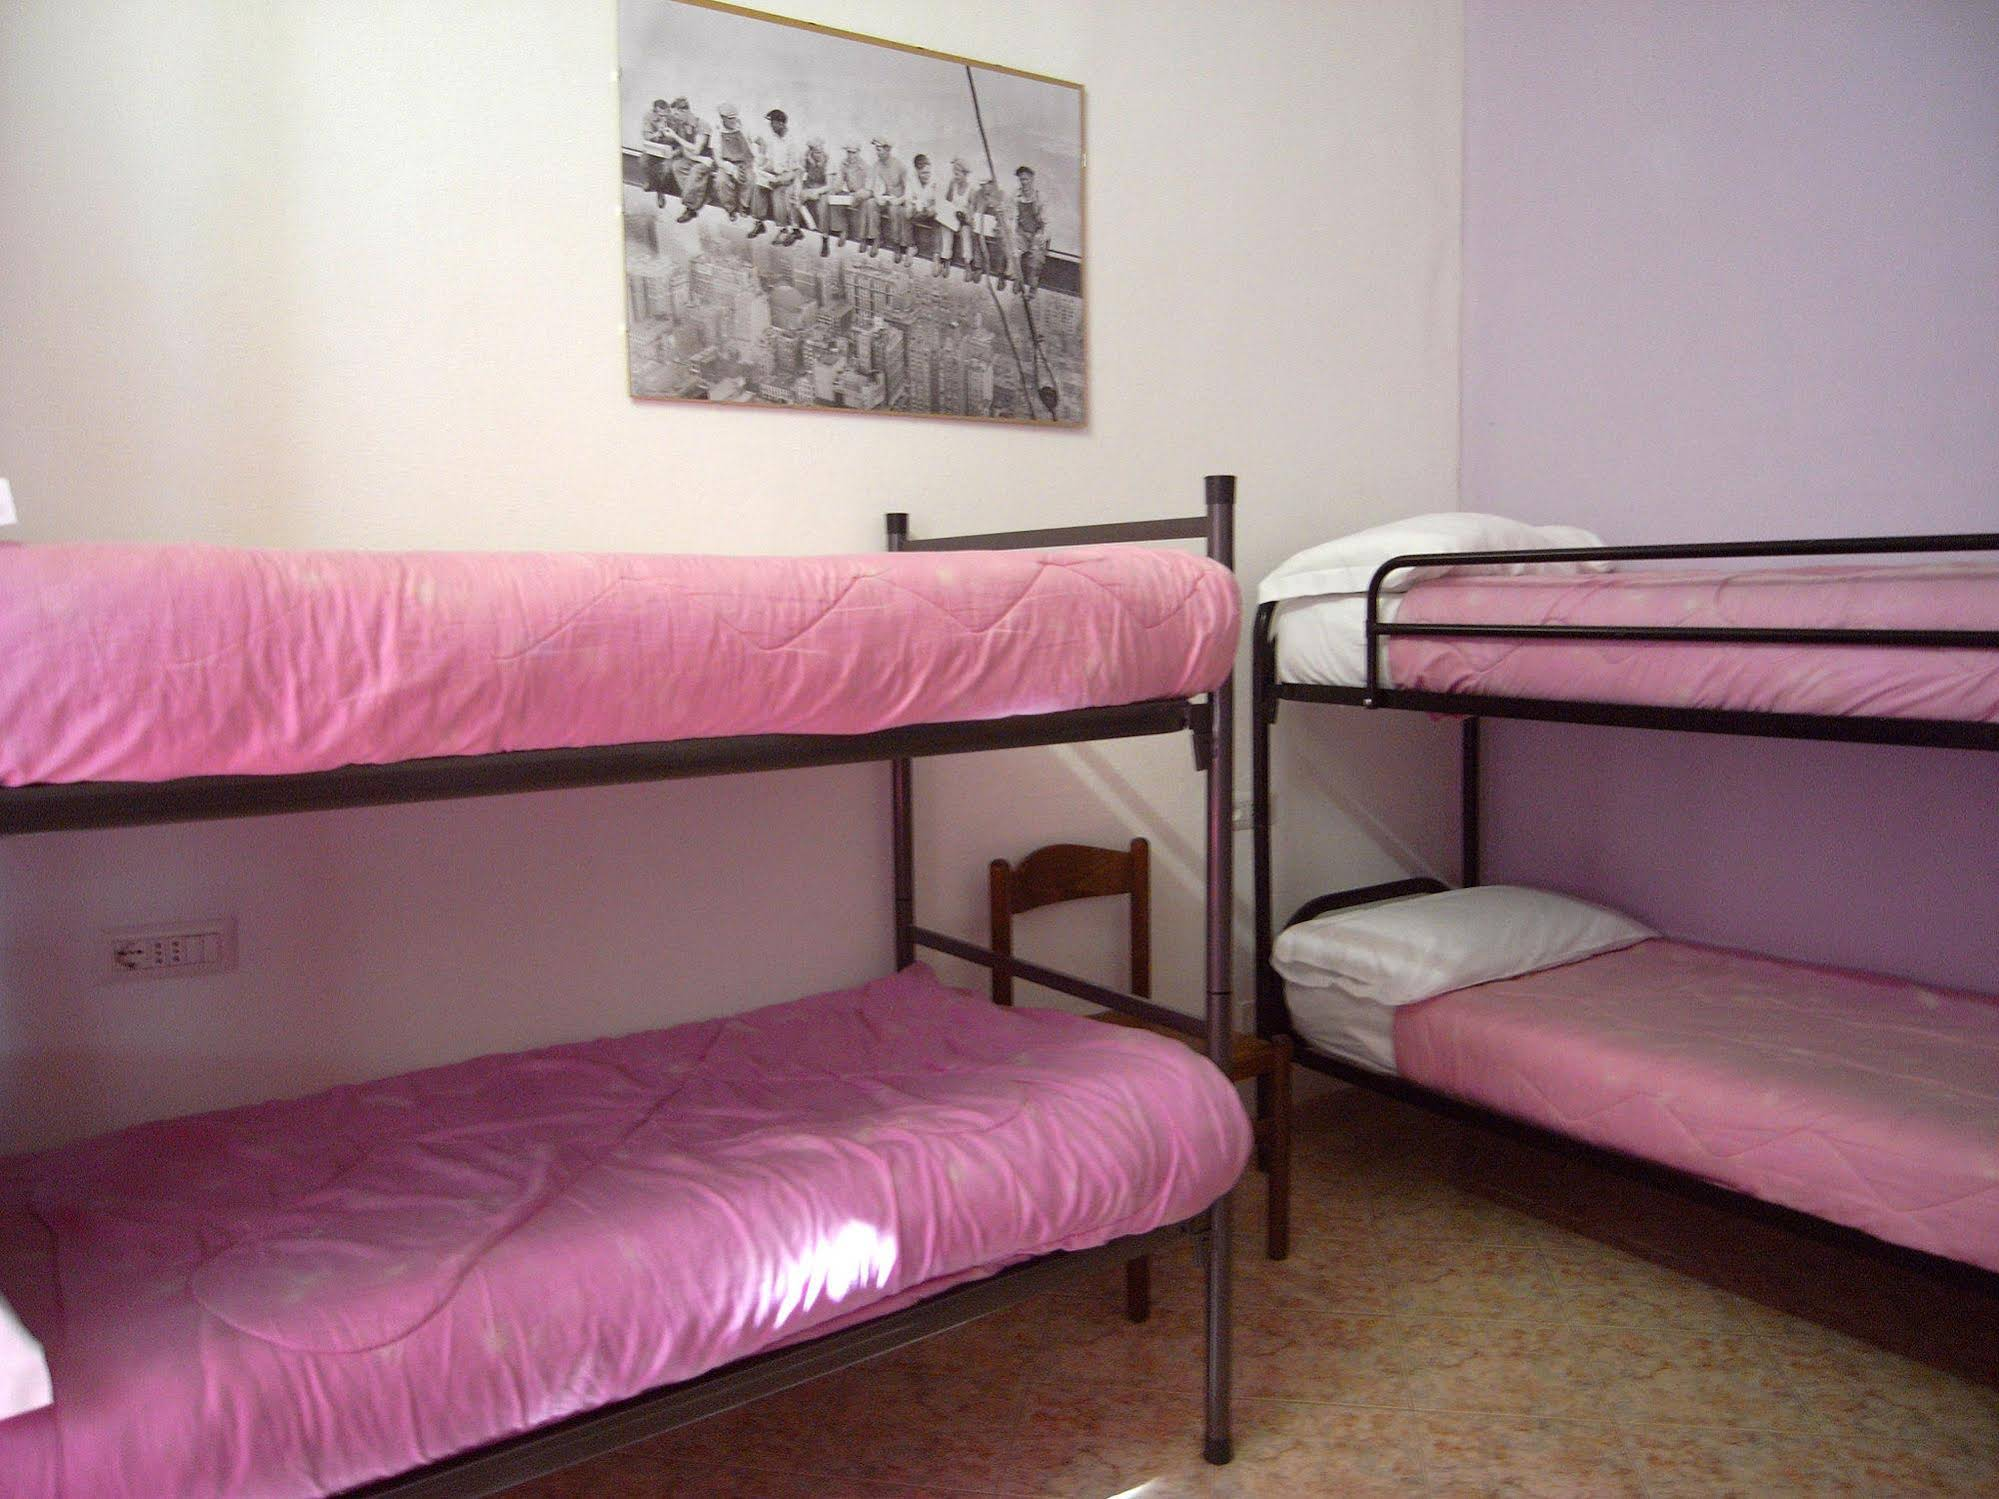 Hostel California Milano